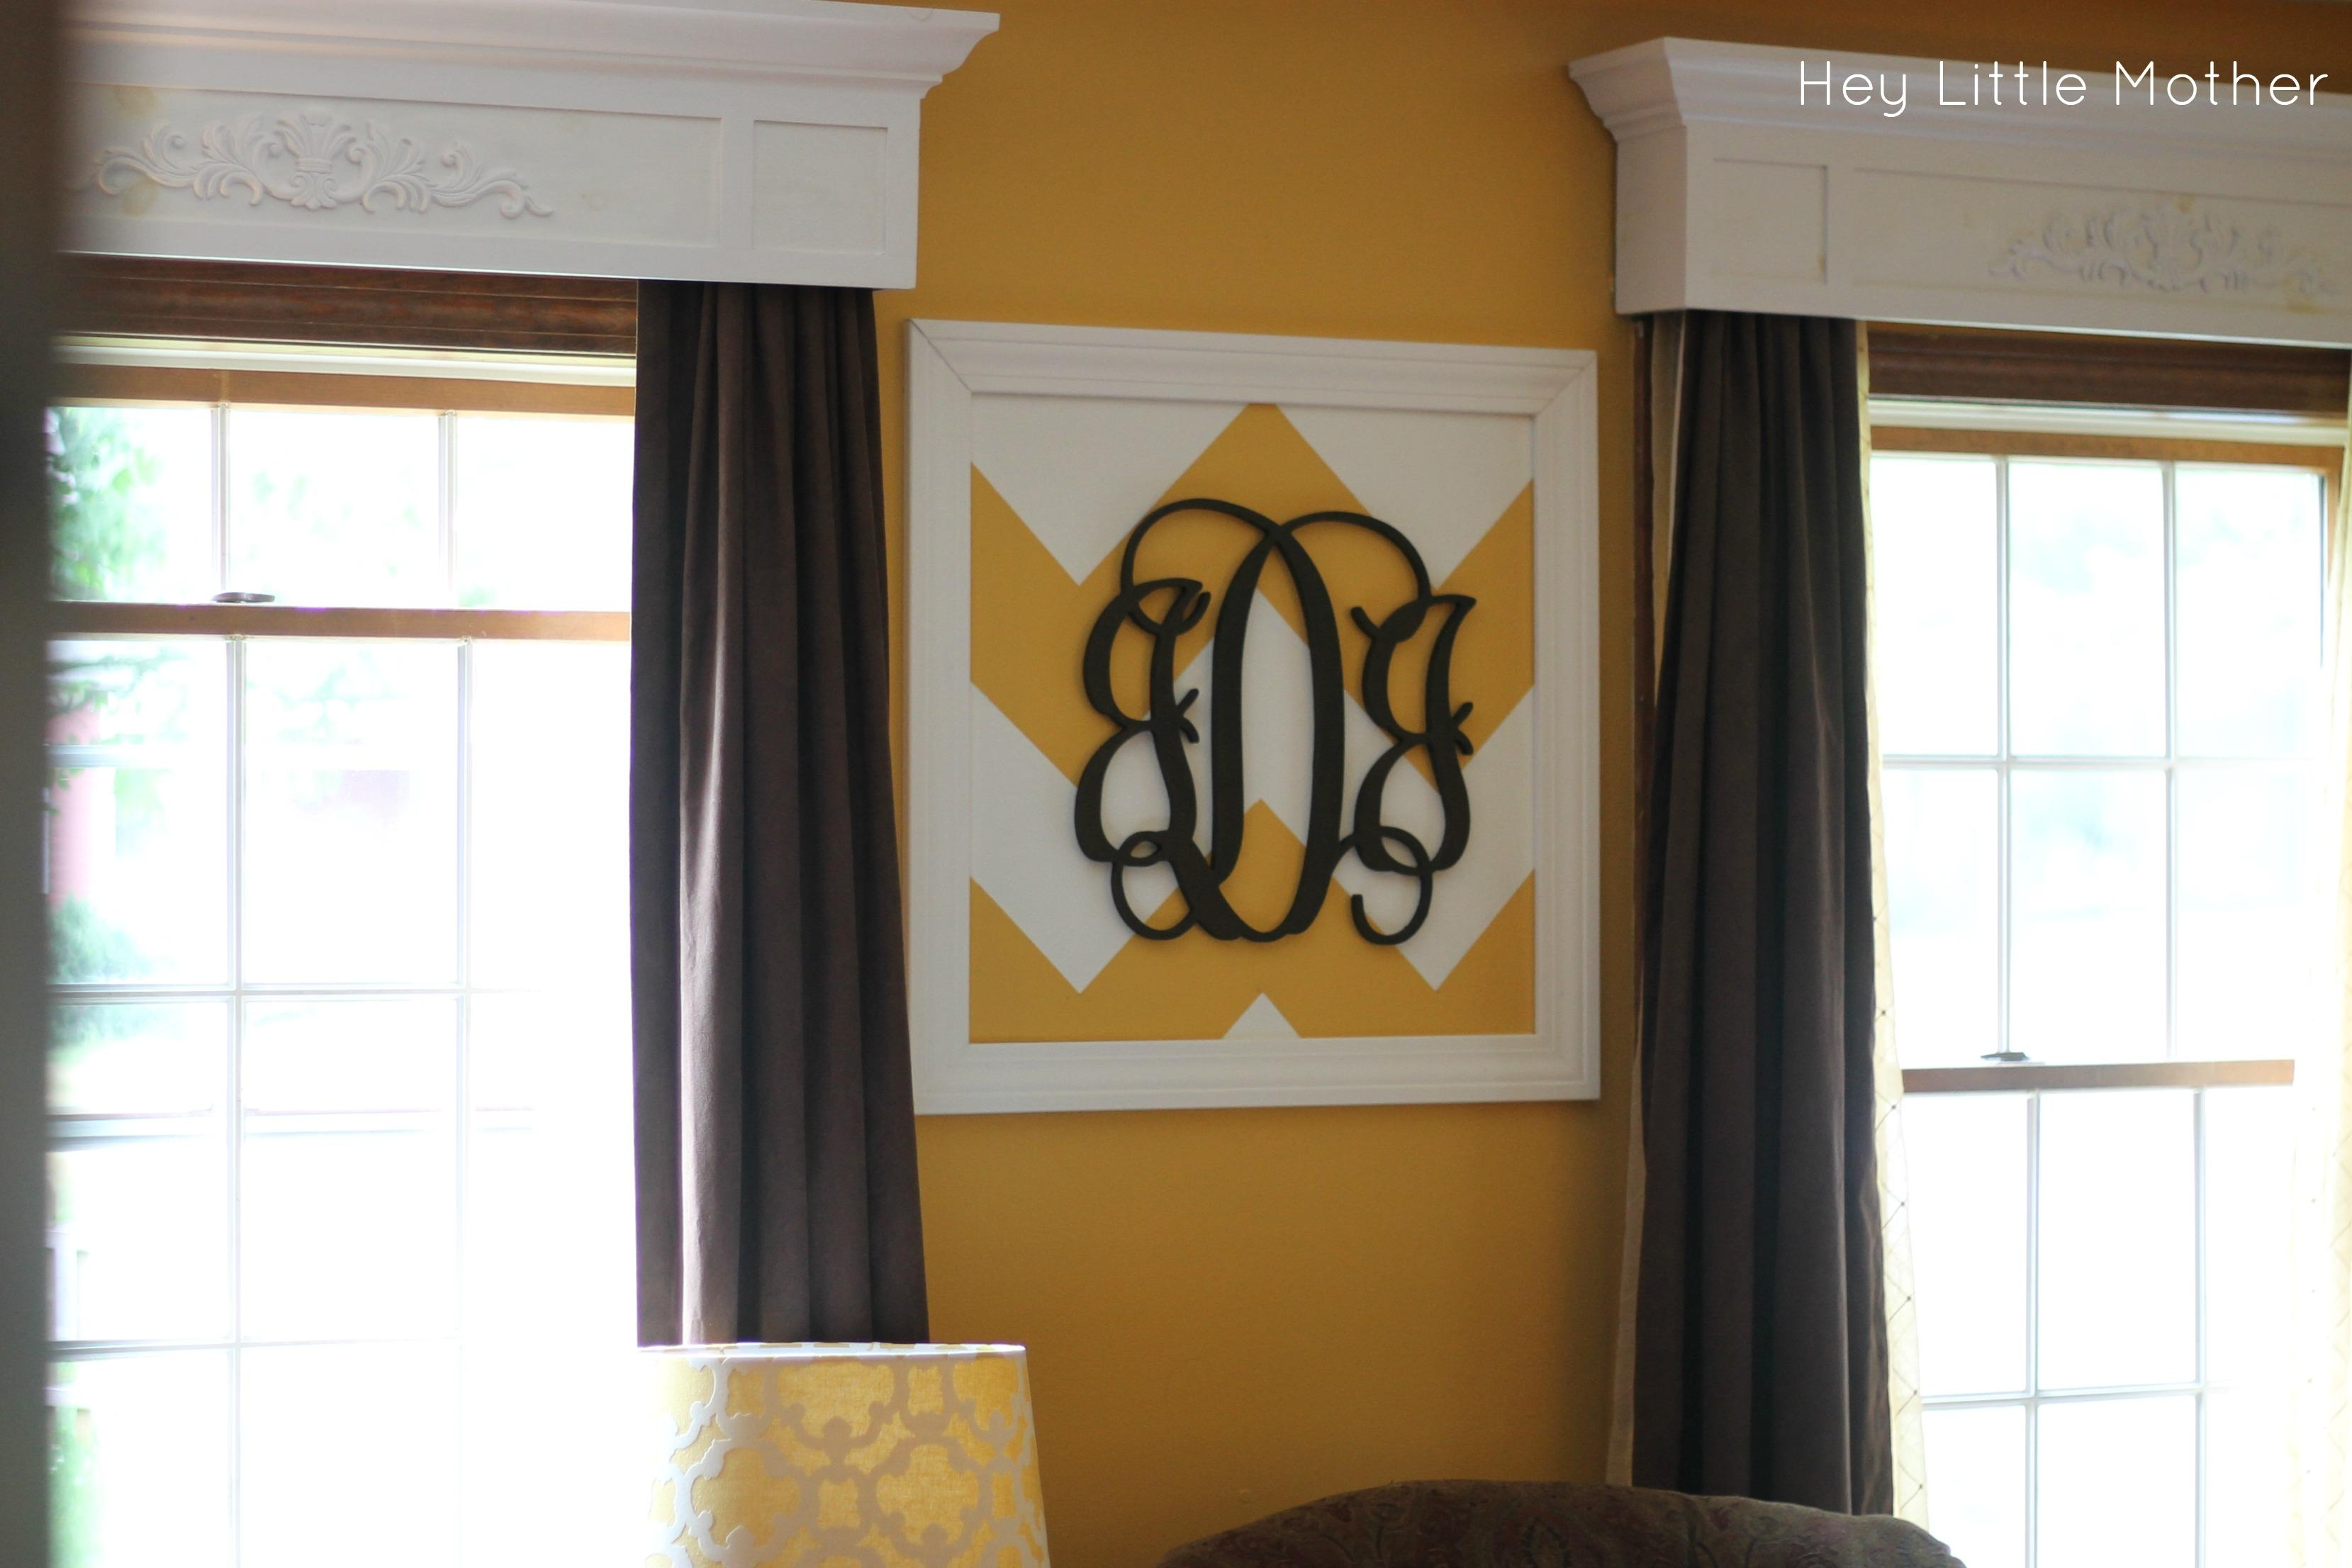 Wall Art Designs: Awesome Designed Framed Monogram Wall Art With Inside Framed Monogram Wall Art (View 3 of 20)